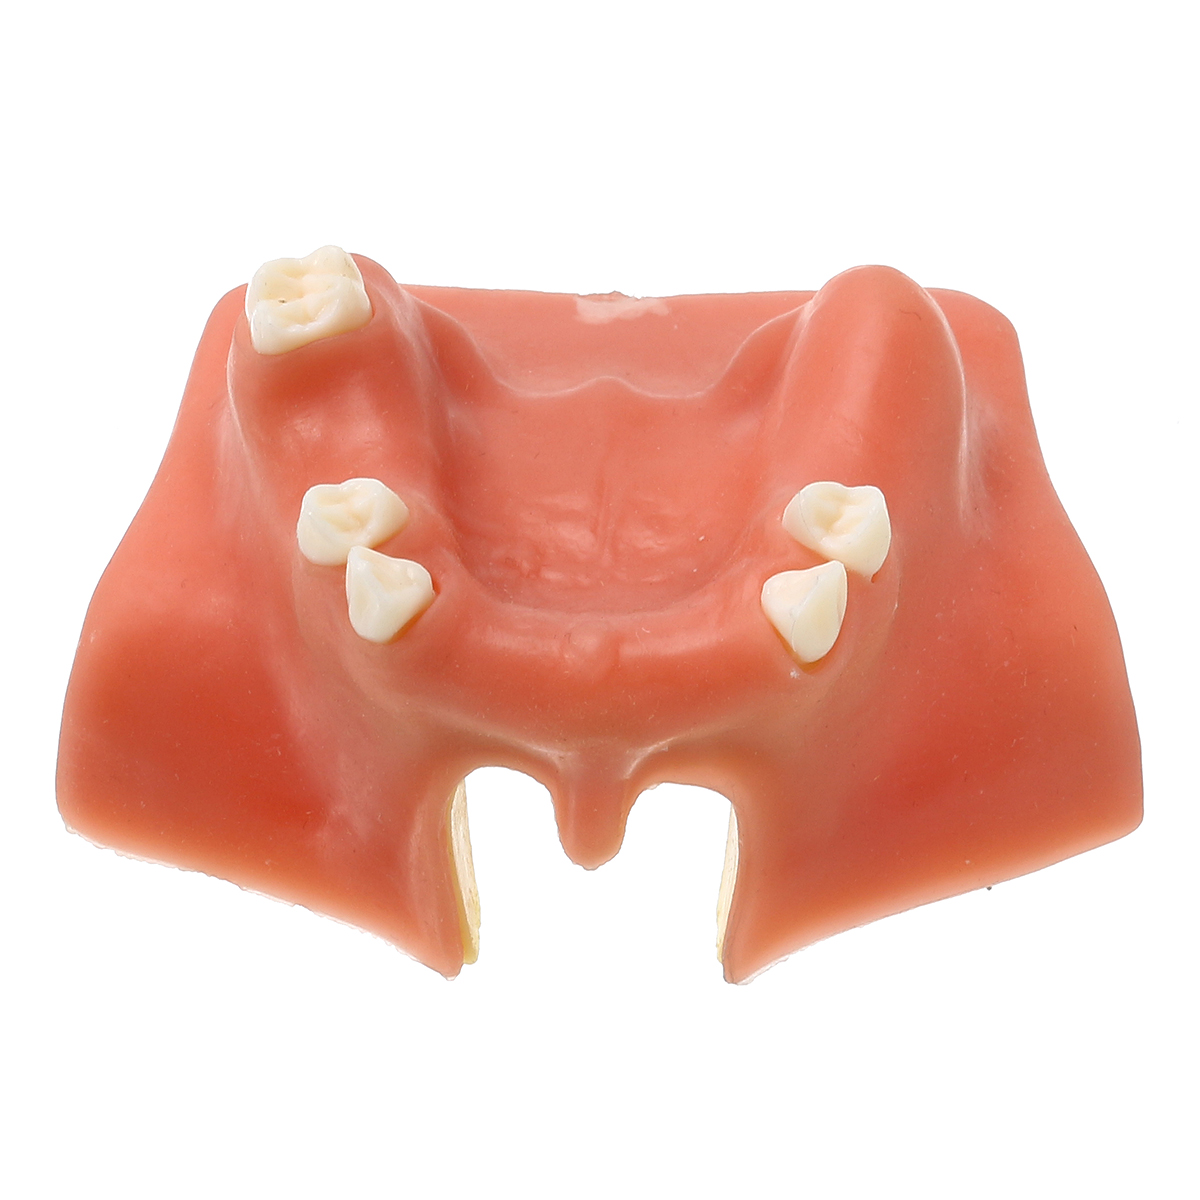 Resin Maxillary Teeth Model Upper Jaw Sinus Lift Implants Restoration Dental Practice Model For Medical Teach Study Demostration hot teeth development models teeth and jaw development model dental teeth models